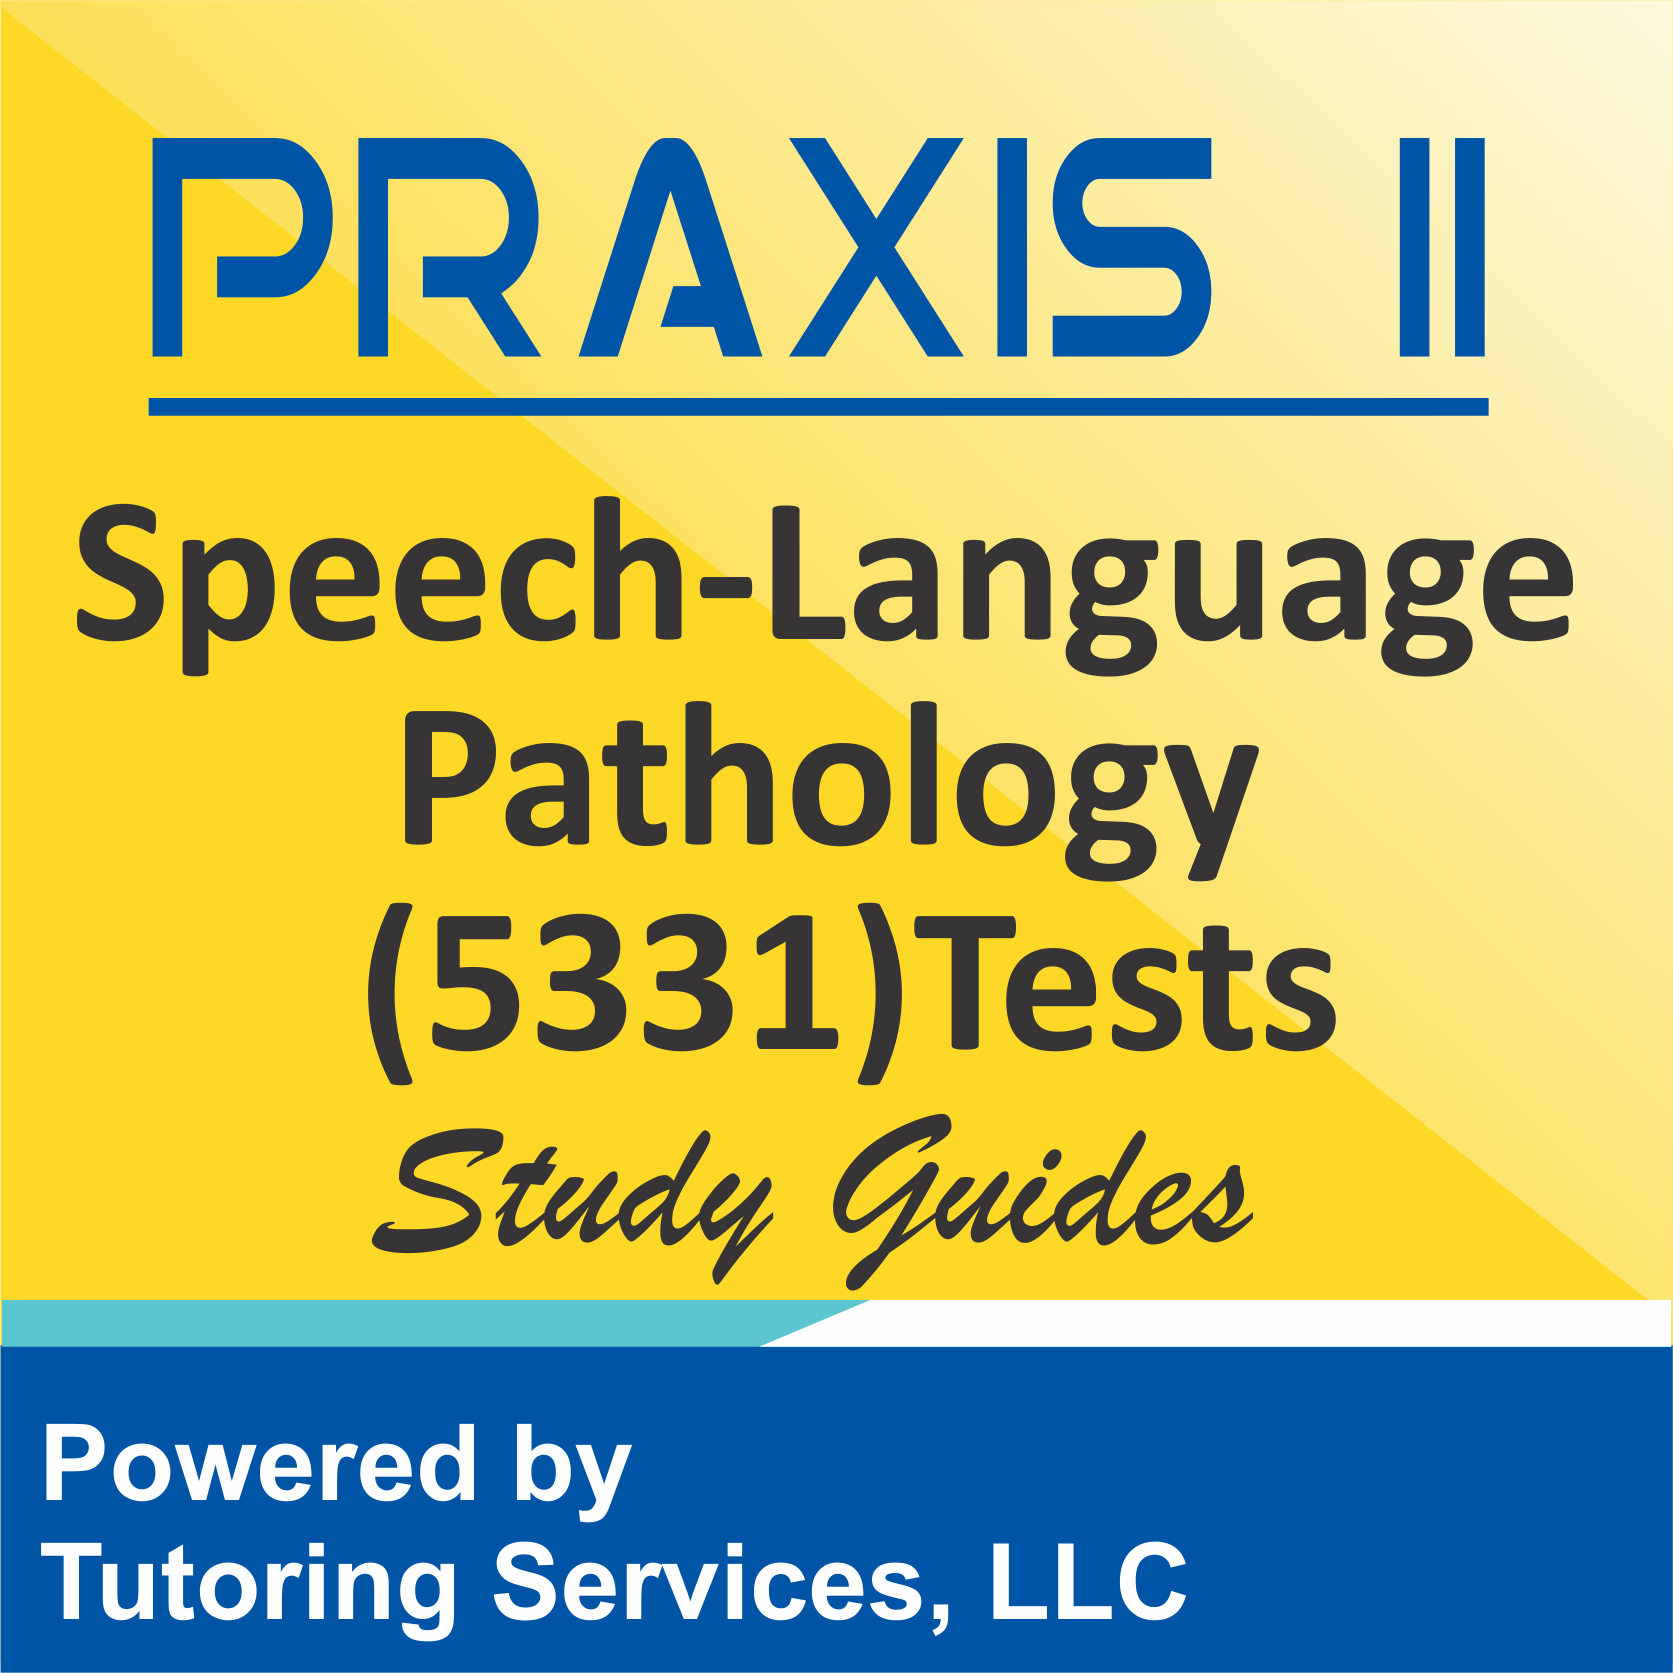 Praxis II Speech-Language Pathology (5330) Examination Syllabus